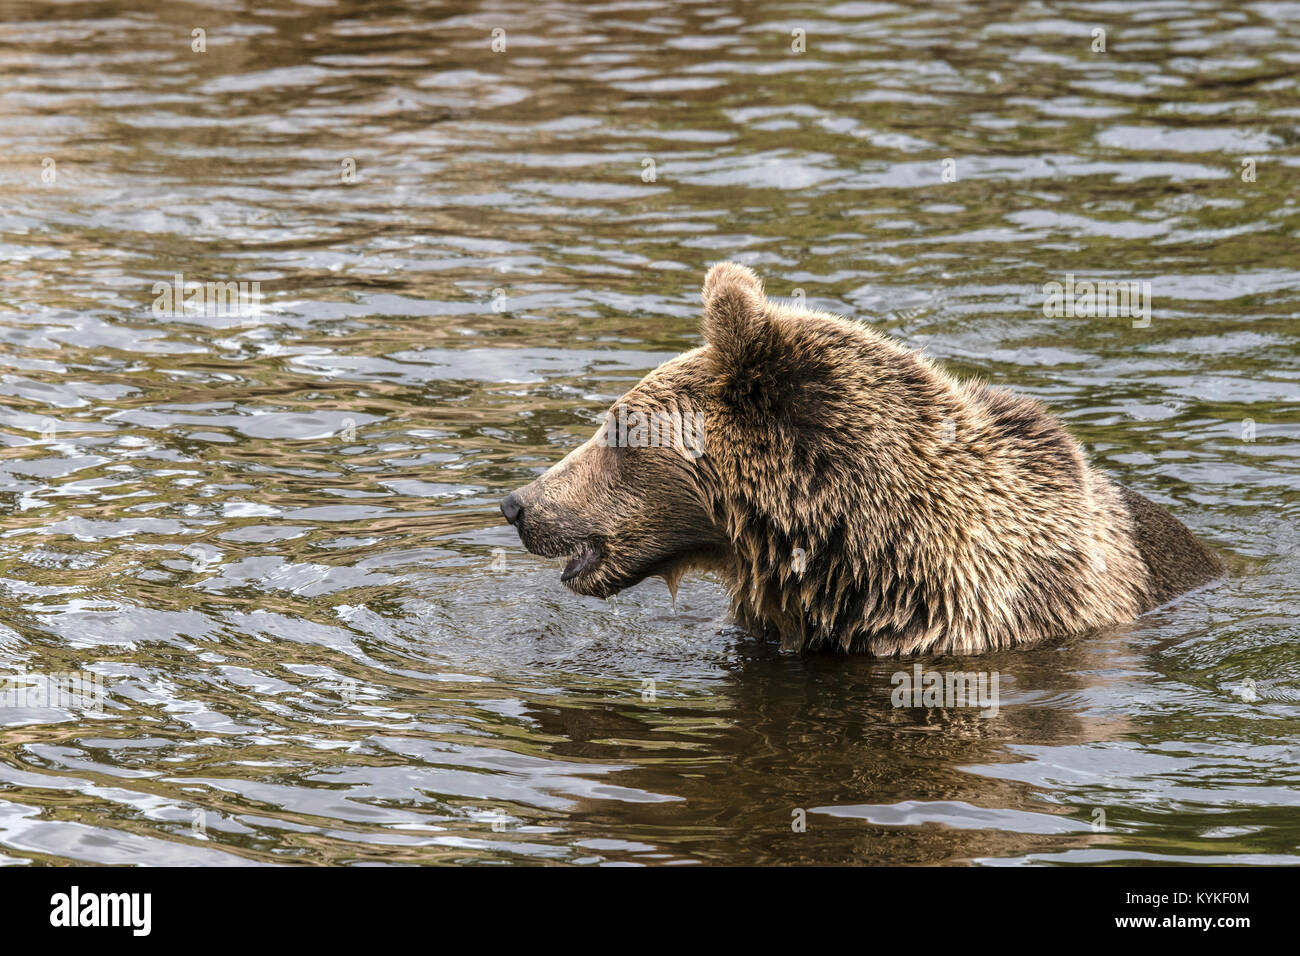 Brown bear hunting for fish in a river looking fierce with wet fur - Stock Image